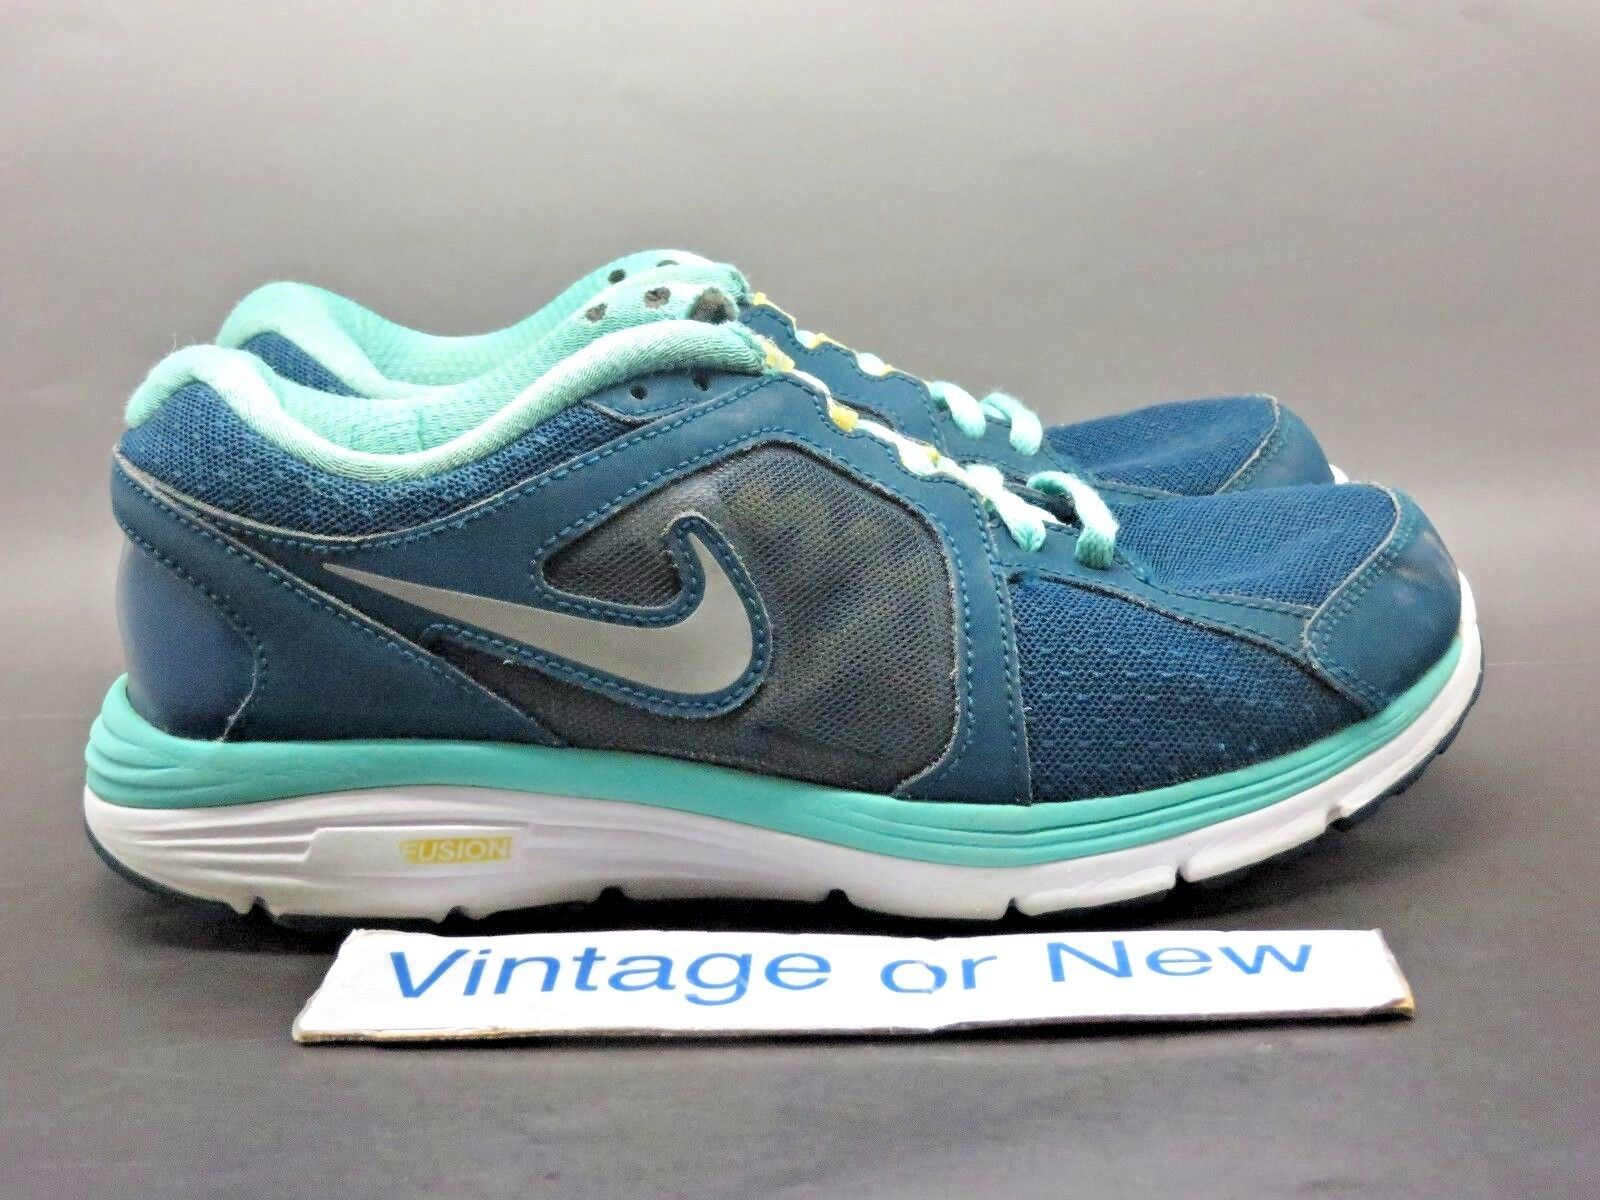 Women's Nike Dual Fusion Livestrong Green Yellow Running Shoes 554693-307 Price reduction Special limited time